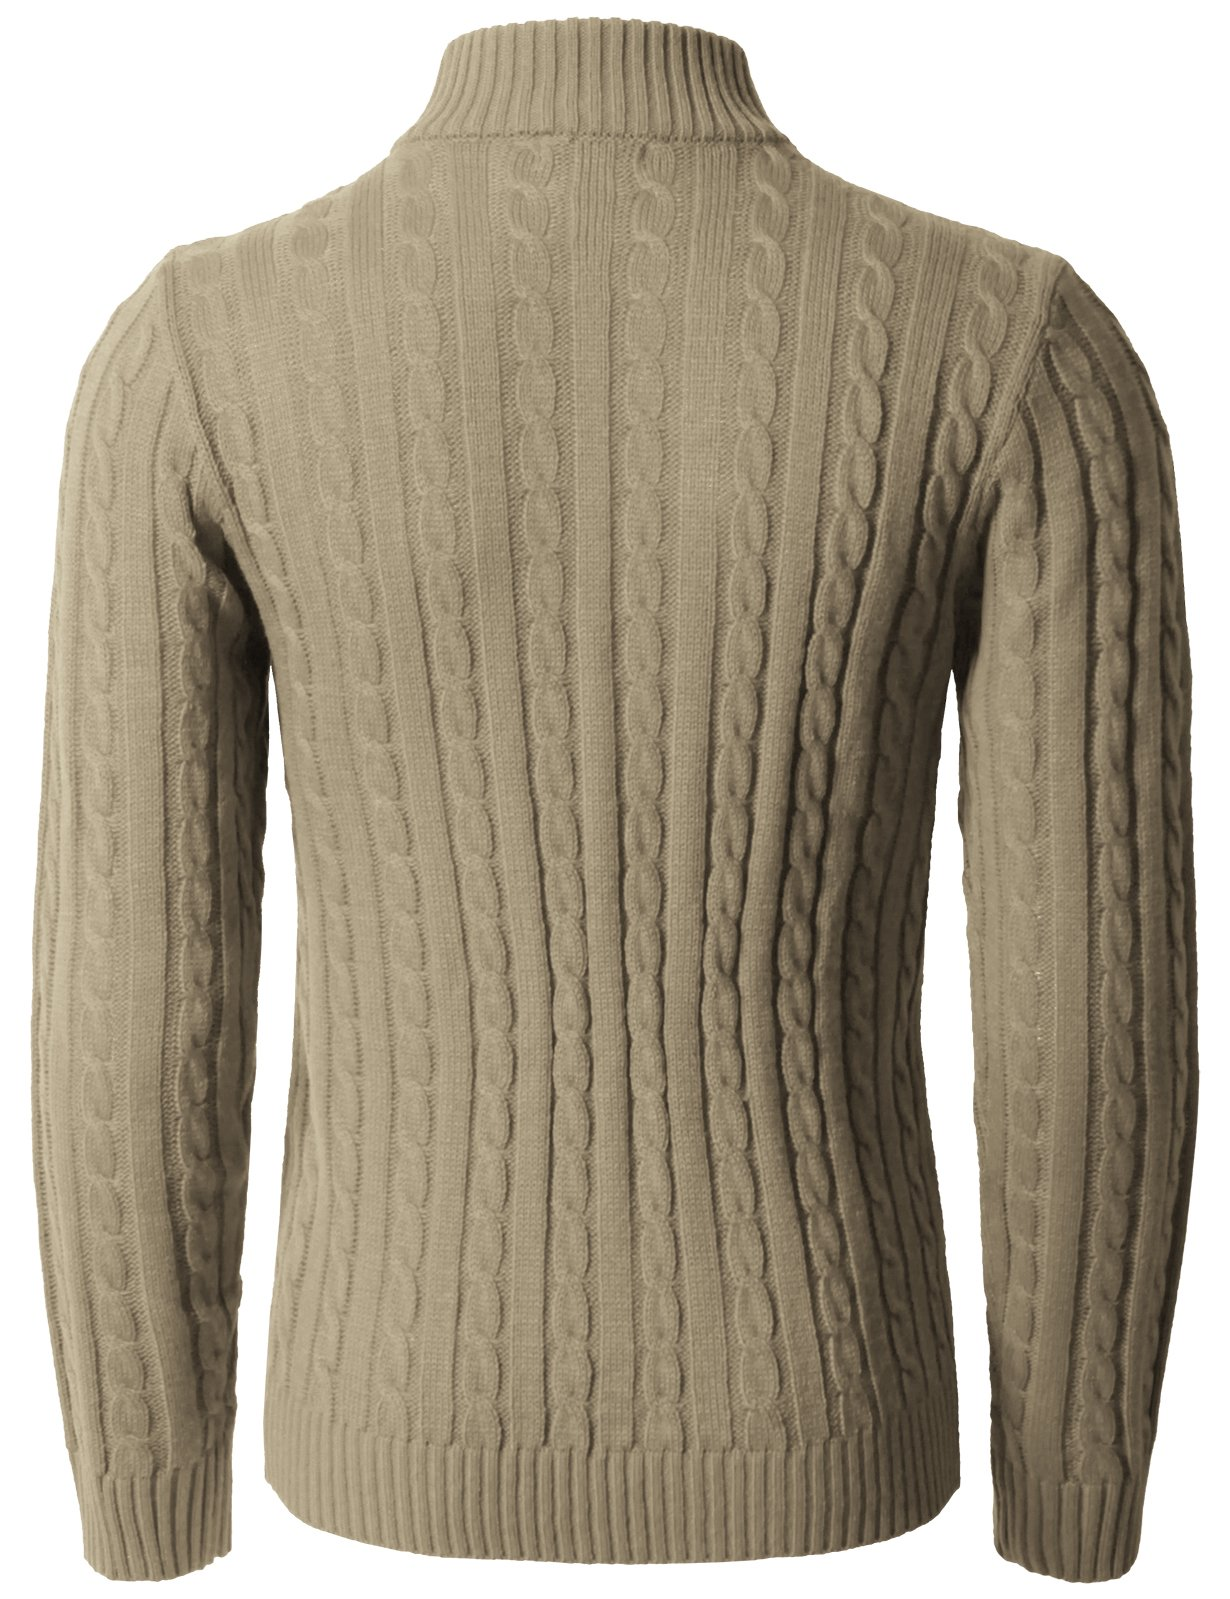 H2H Mens Casual Slim Fit Pullover Sweaters Long Sleeve Knitted Fabric Zip Up Mock Neck Polo Sweater